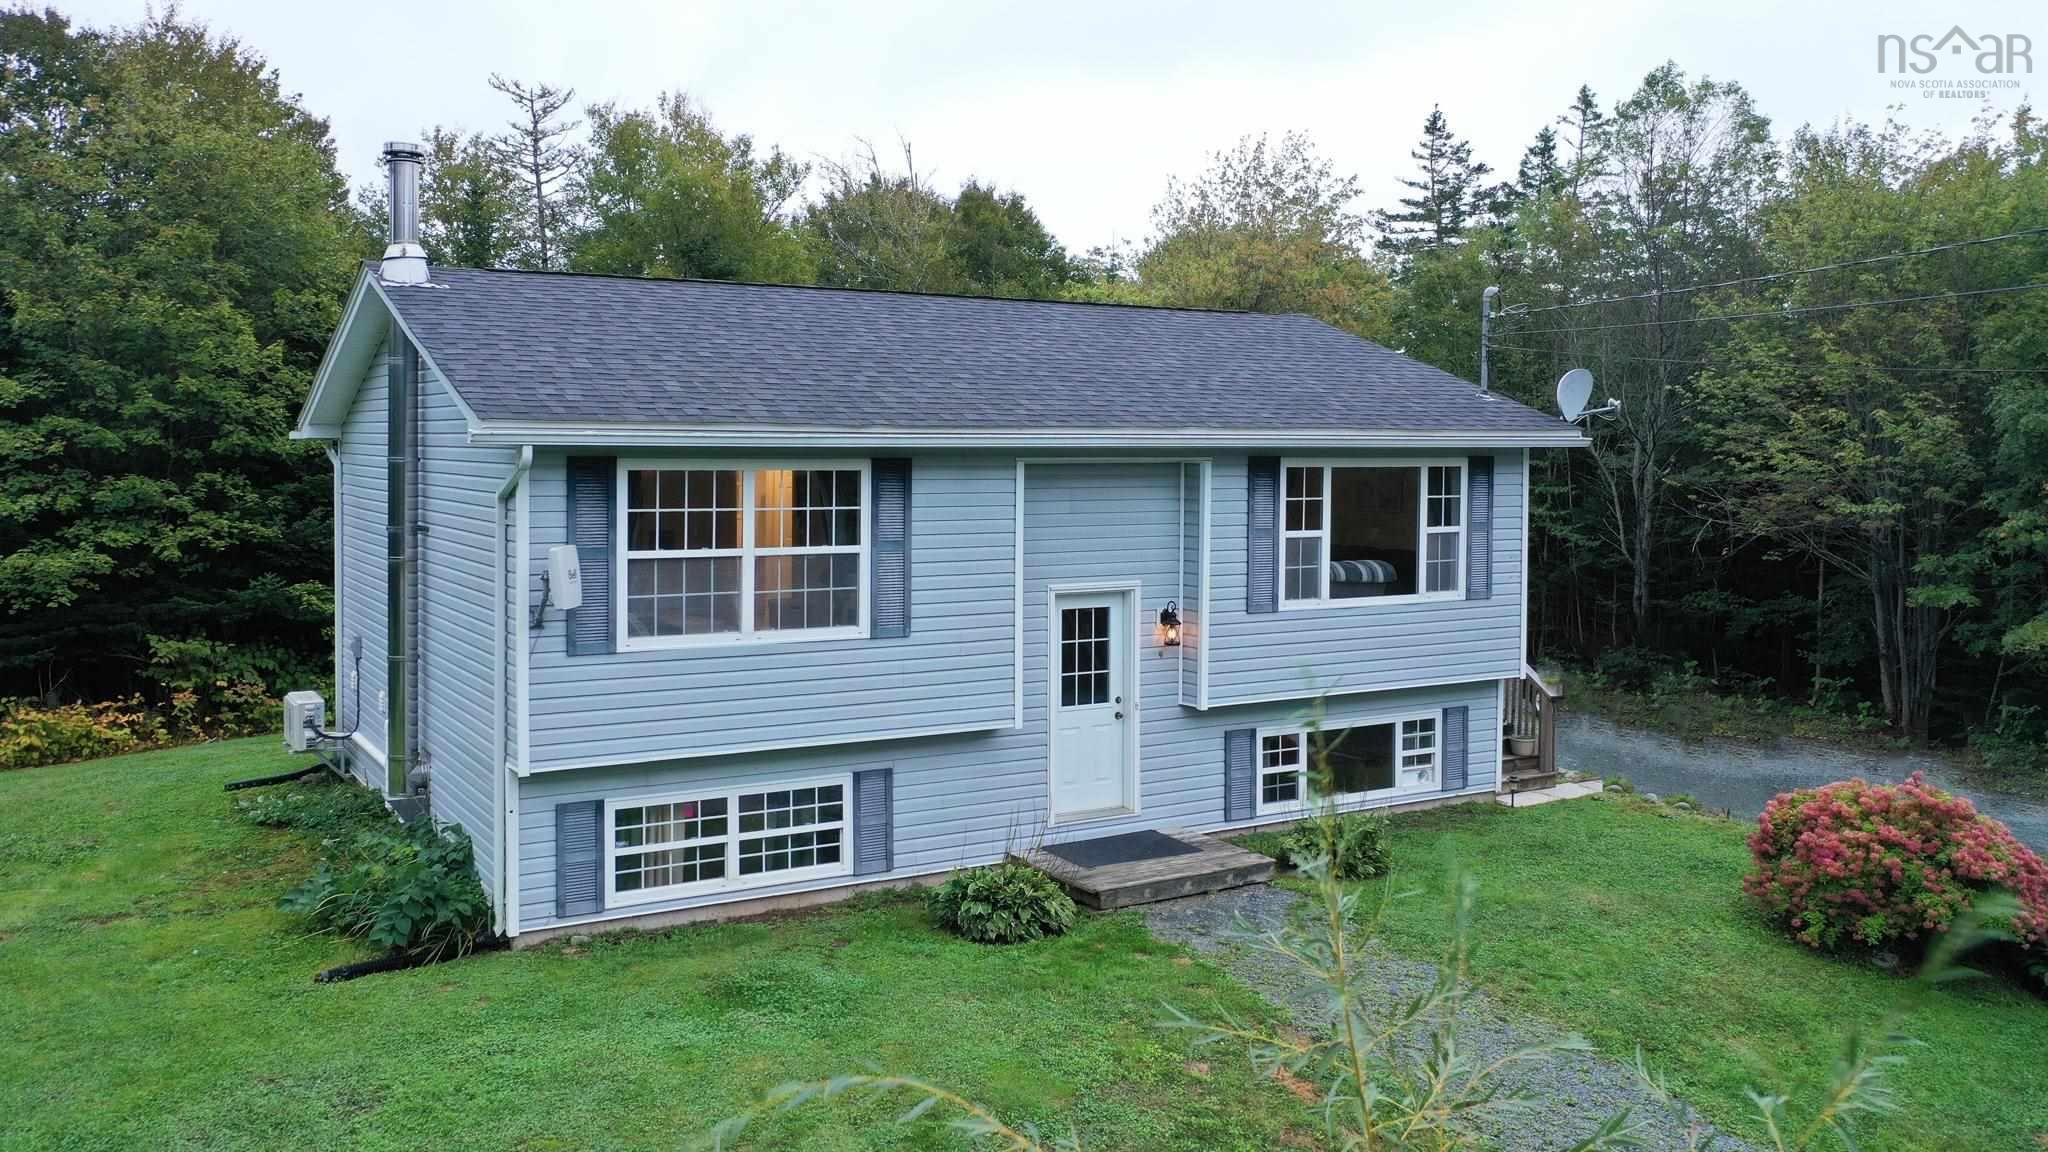 Main Photo: 51 Beech Hill Road in Beech Hill: 35-Halifax County East Residential for sale (Halifax-Dartmouth)  : MLS®# 202124885